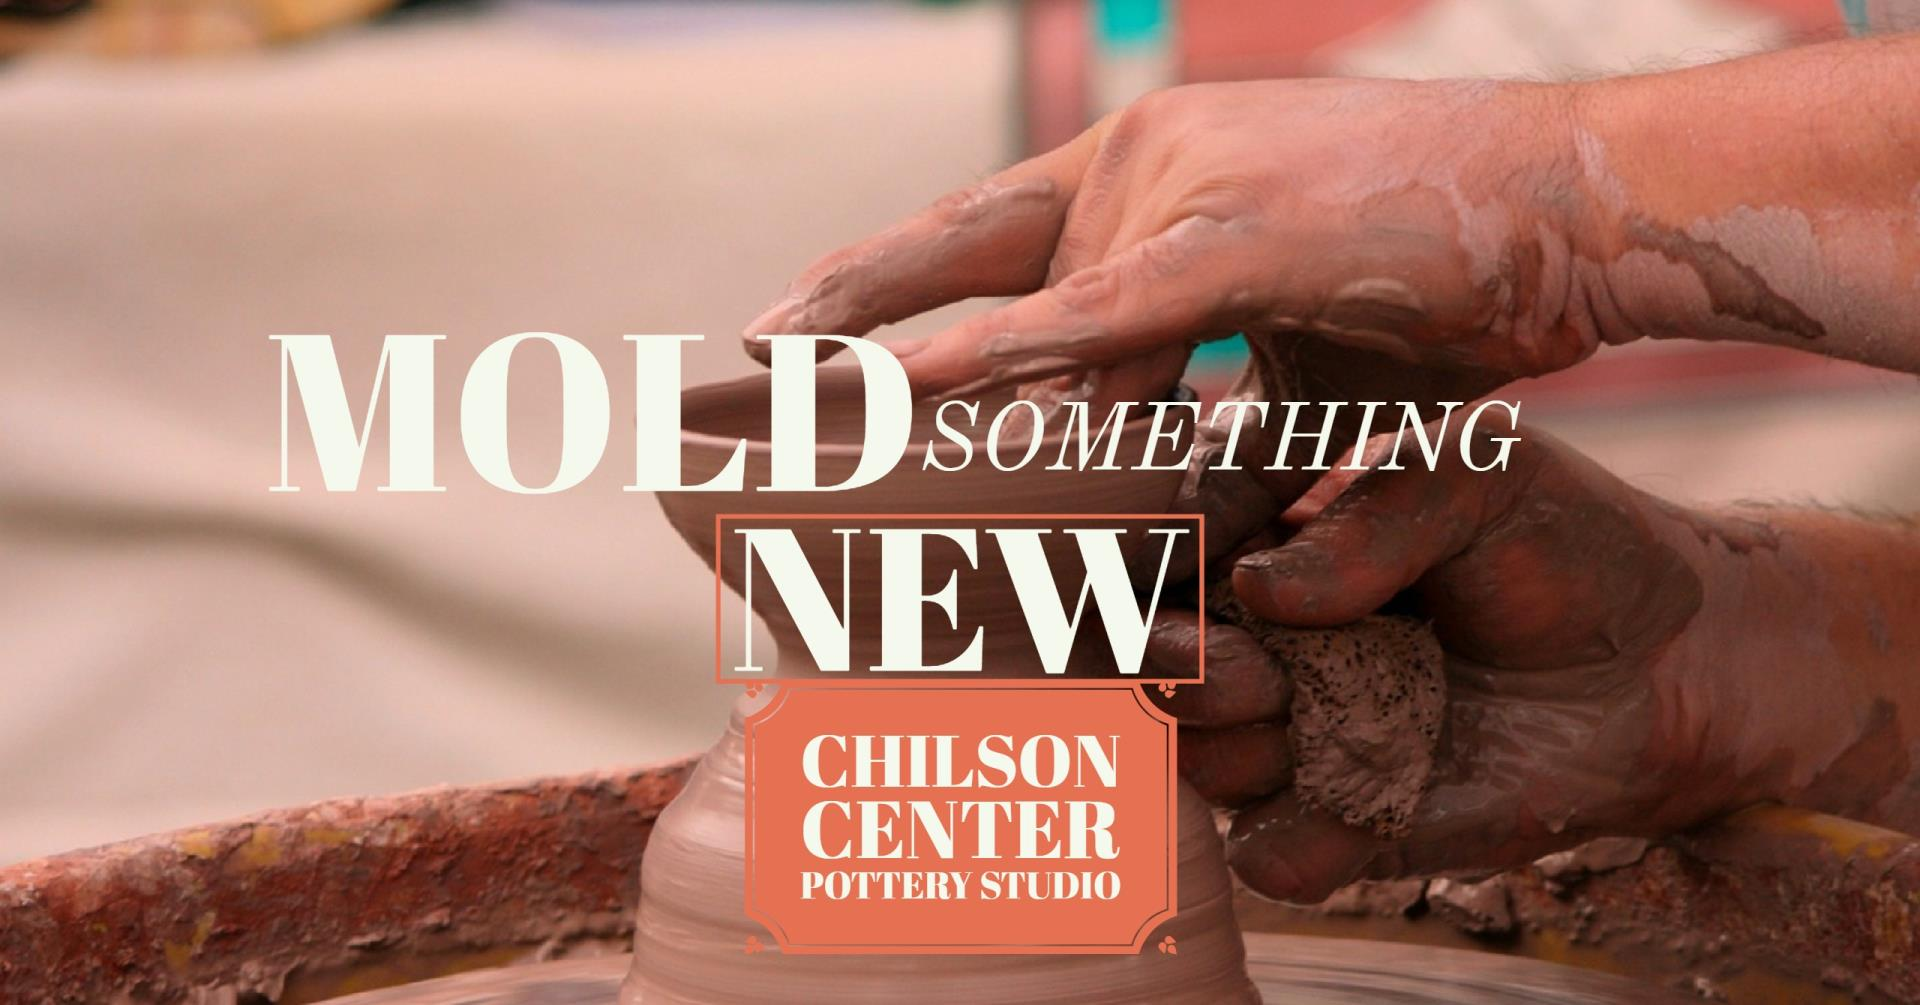 Chilson Center Pottery Studio